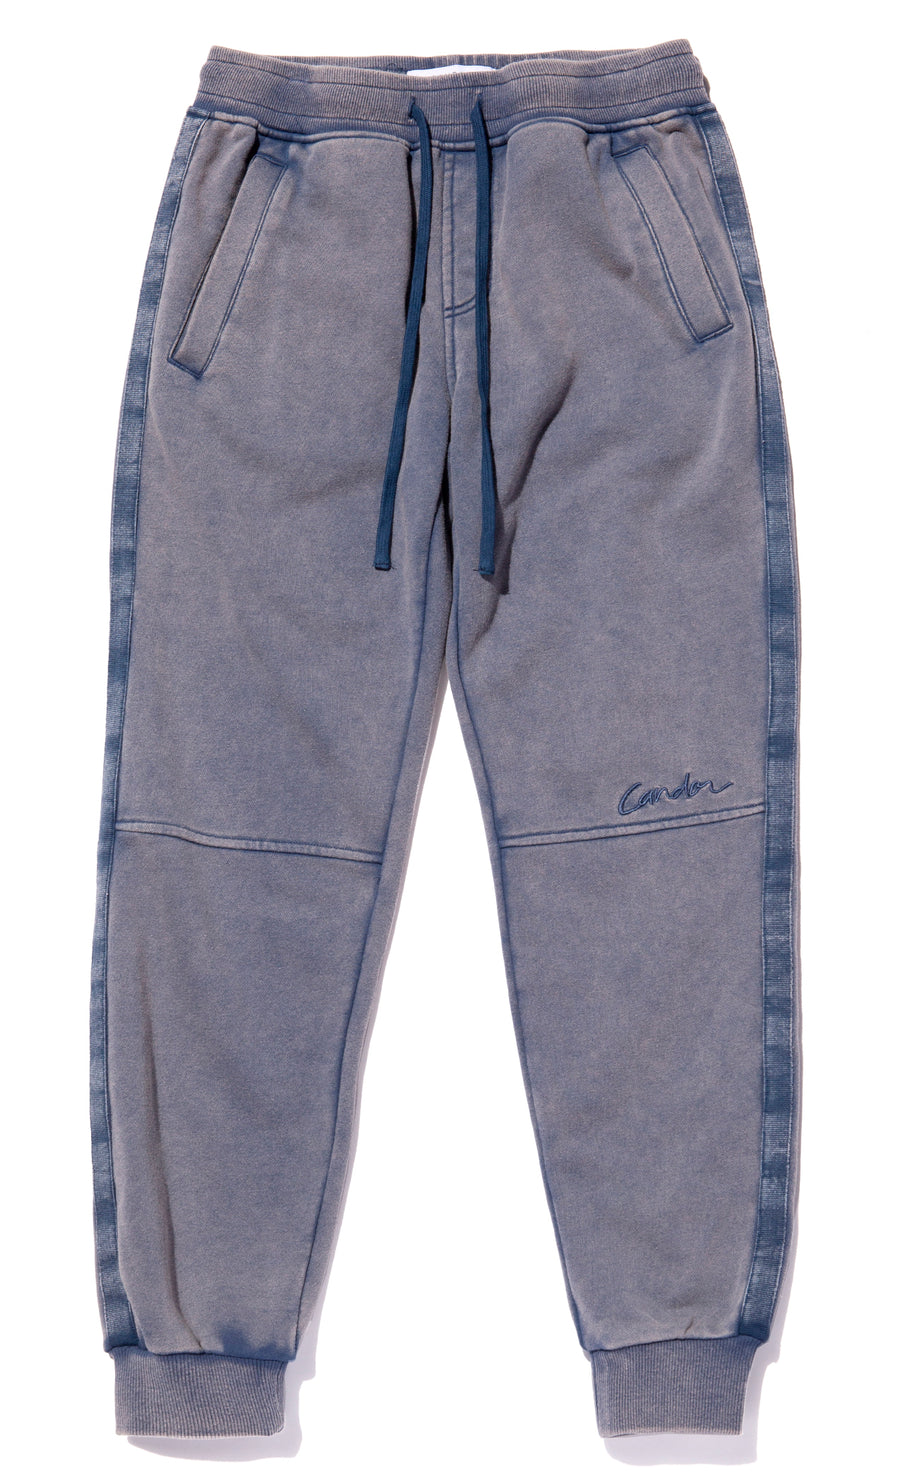 candorofficial - WASHED SWEATPANTS - Bottoms